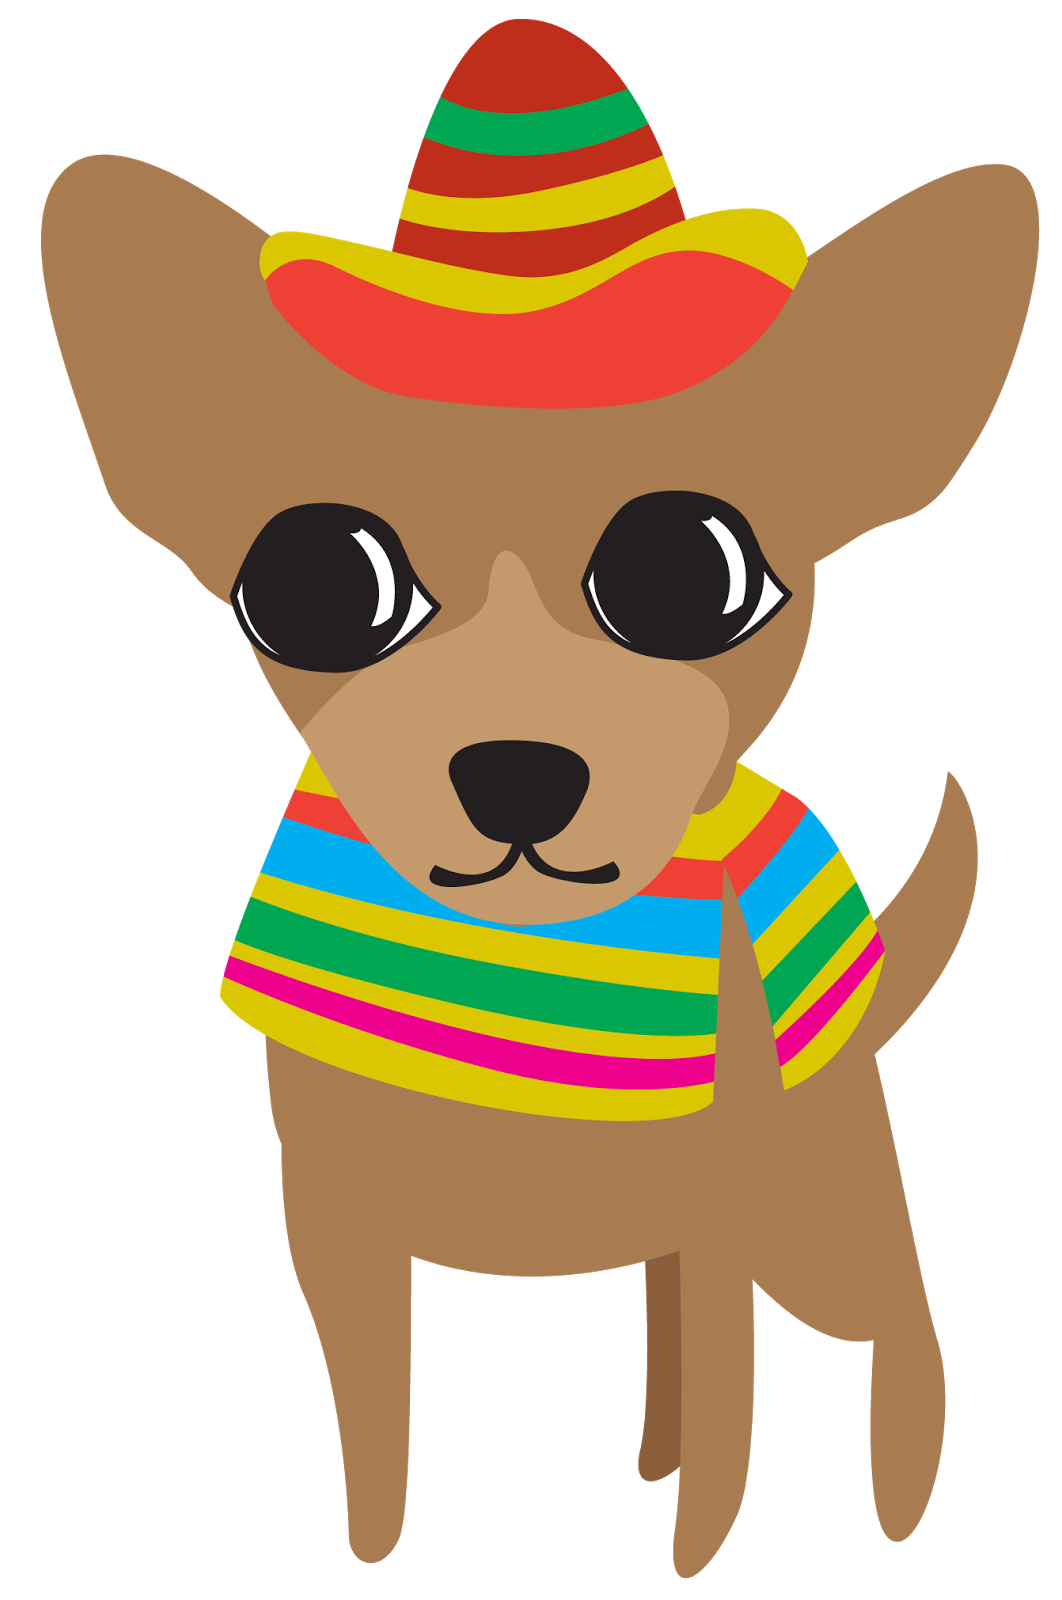 svg freeuse library Chihuahua free on dumielauxepices. Cinco de mayo clipart.